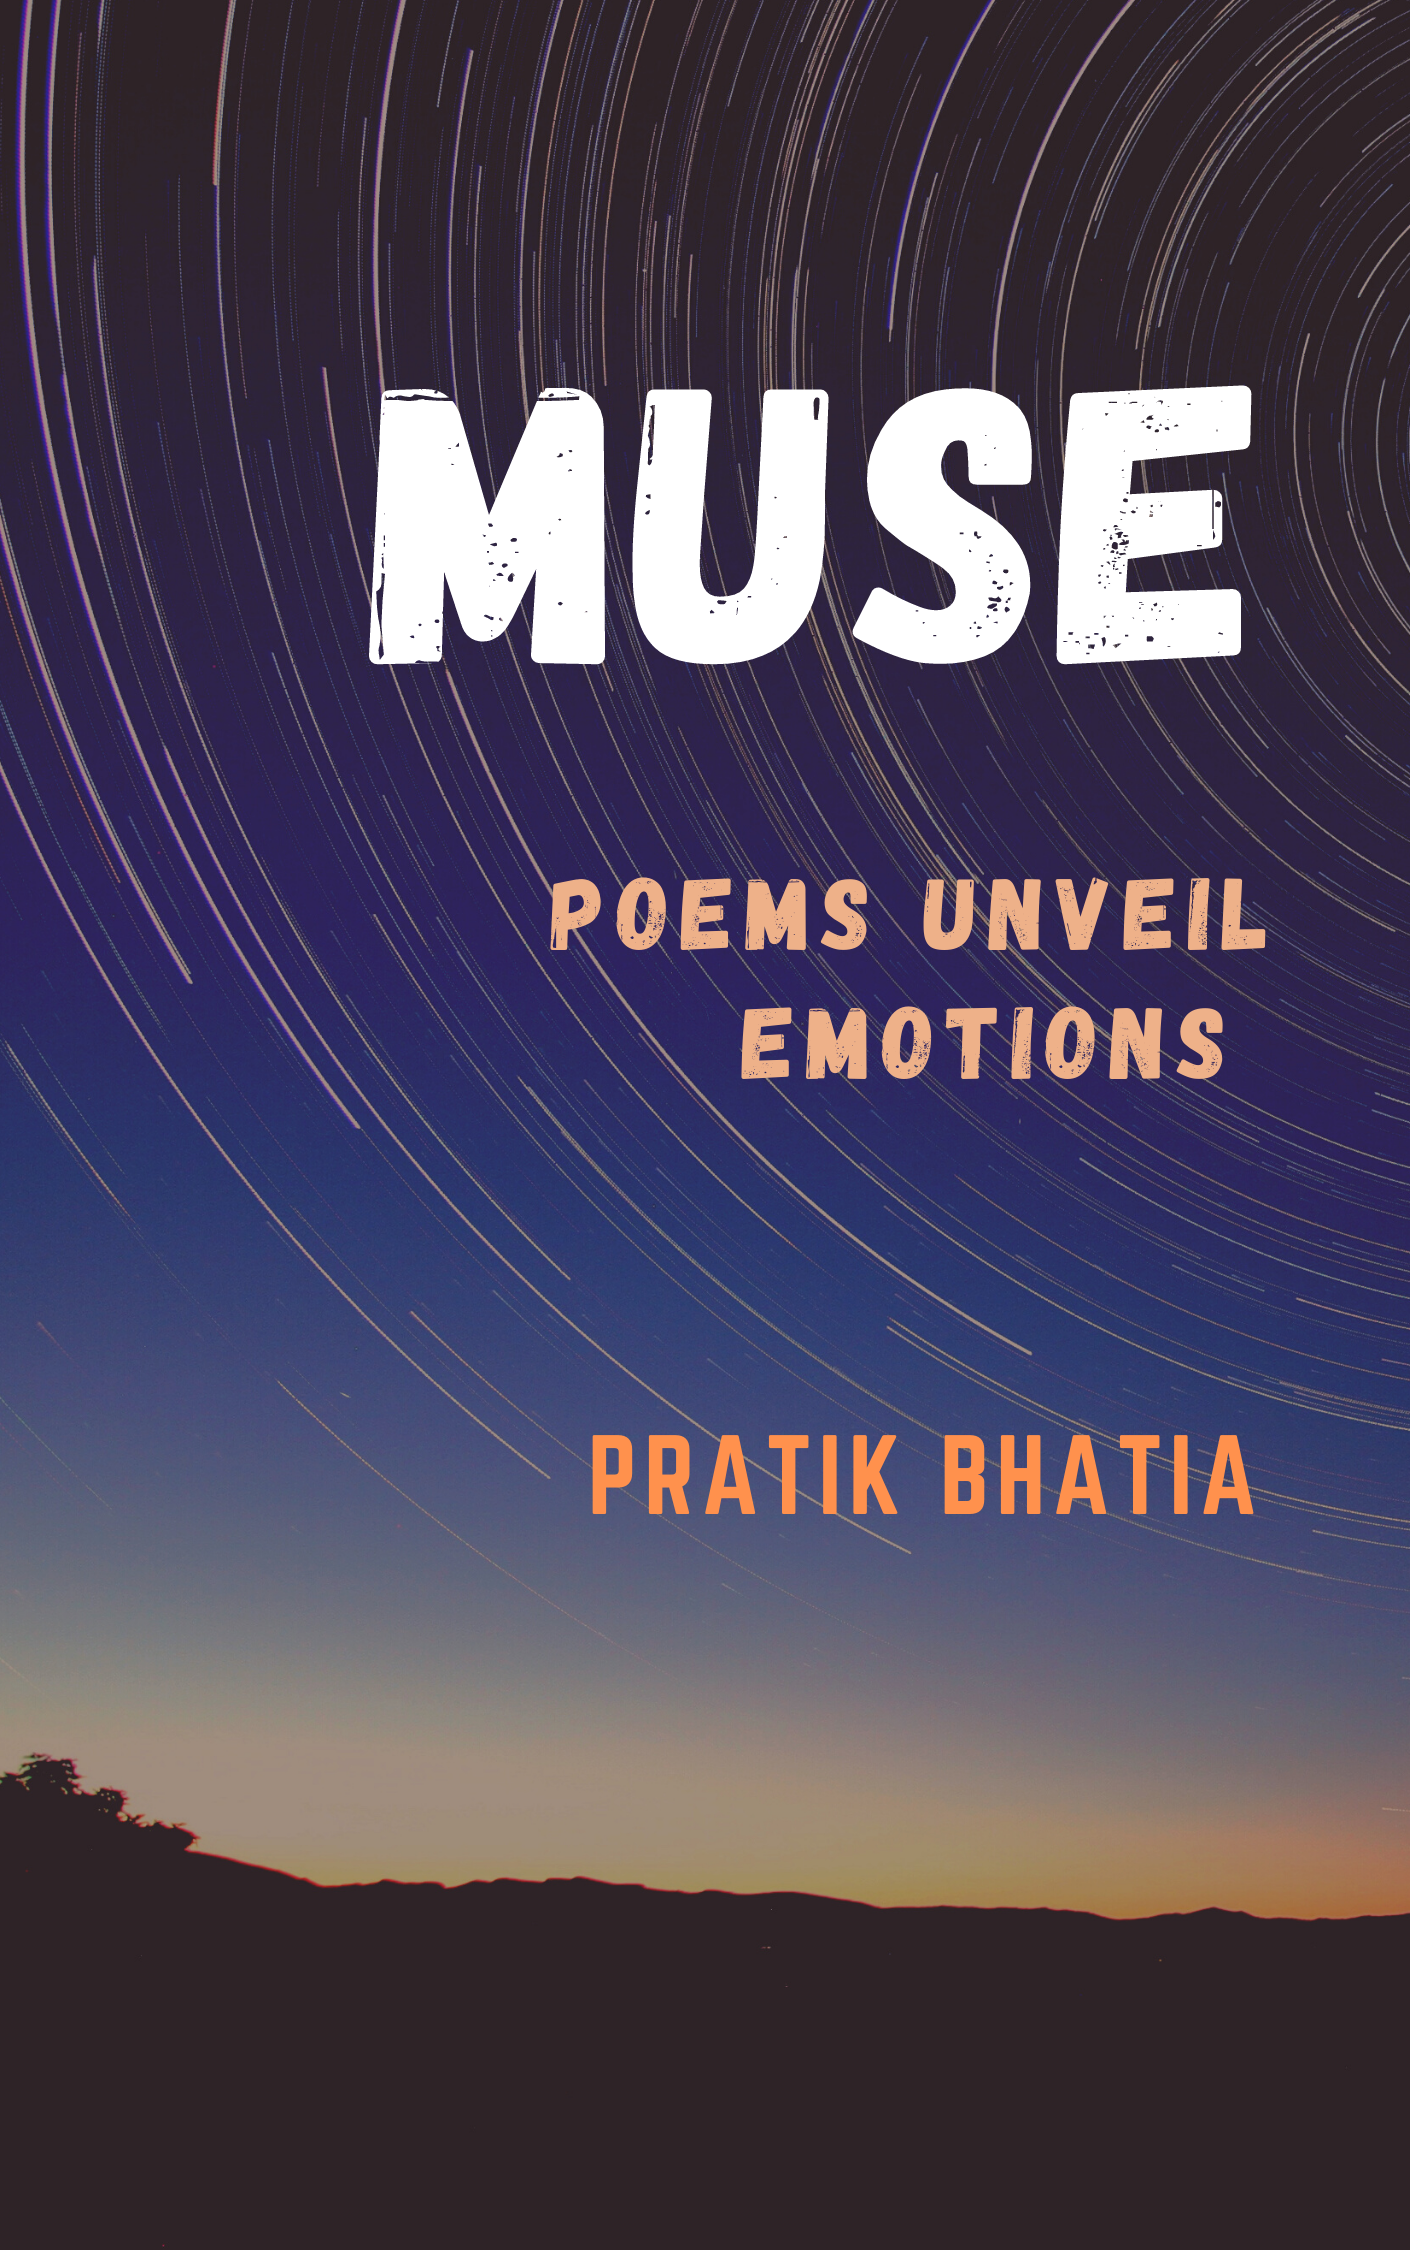 Muse: Poems Unveil Emotions's Ebook Image